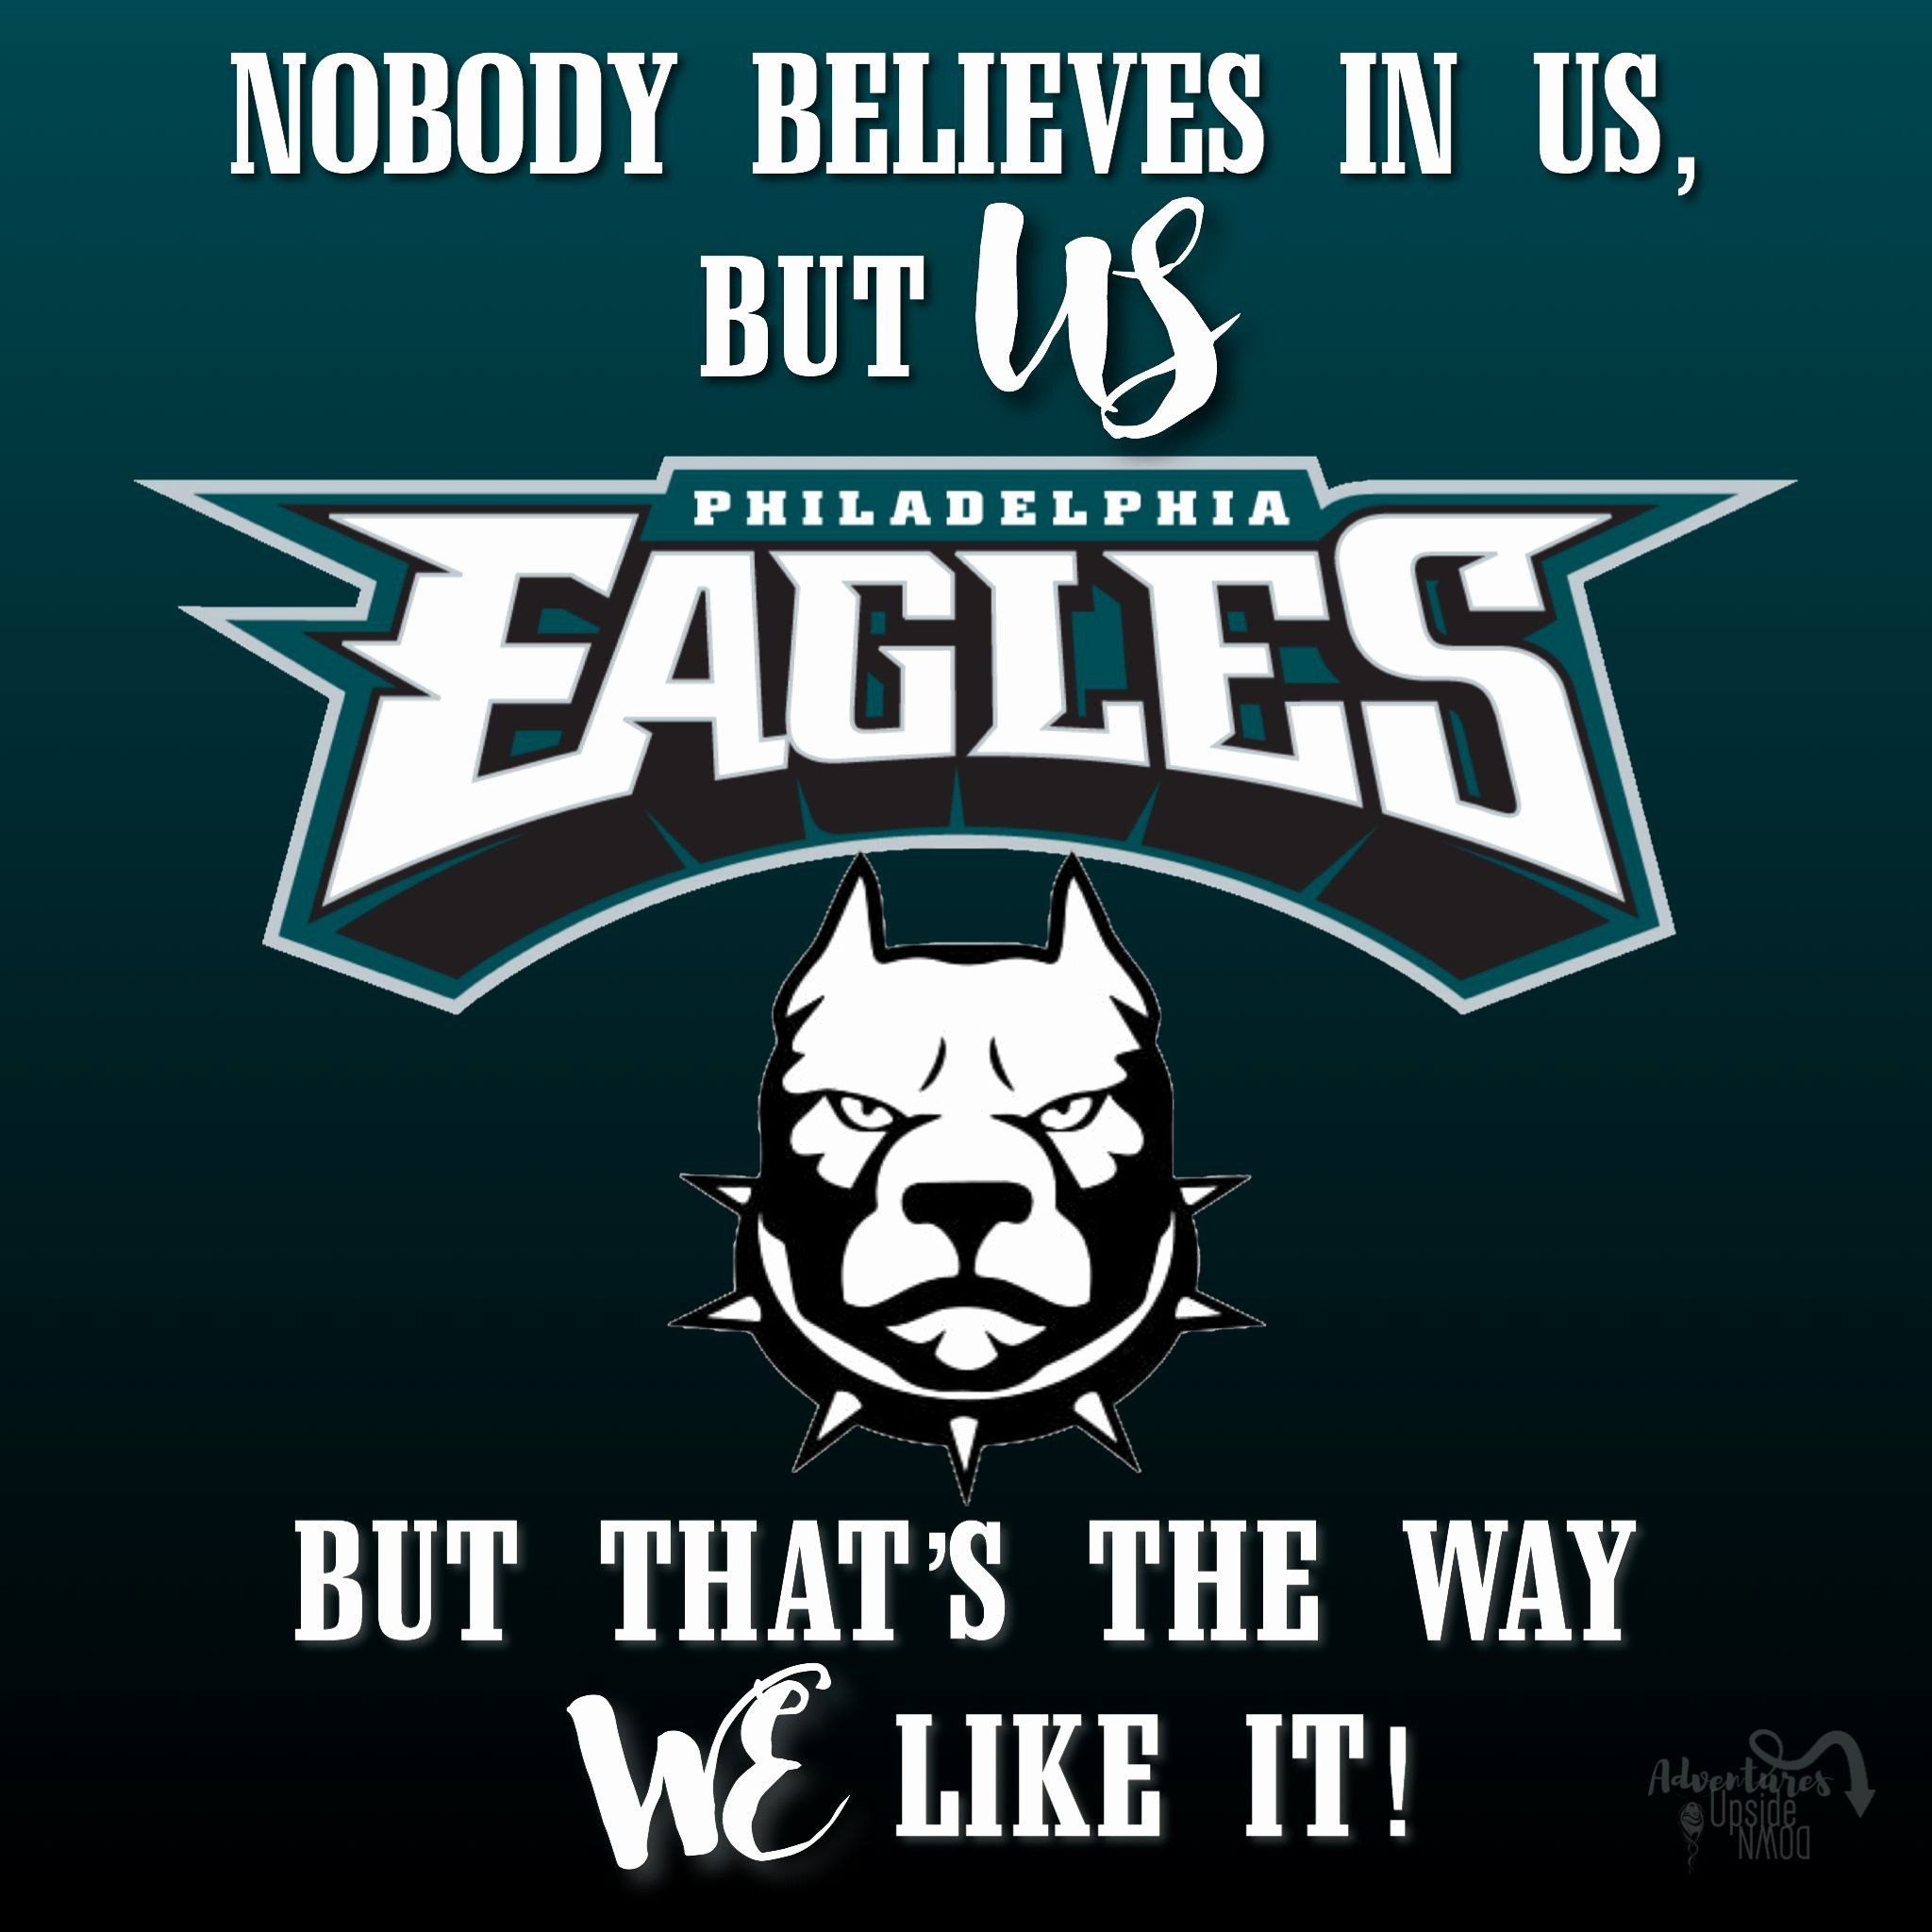 2048x2048 1920x1080 Philadelphia Eagles Desktop Wallpaper HD 1920×1080 Eagles  Wallpaper (31 Wallpapers) | Adorable